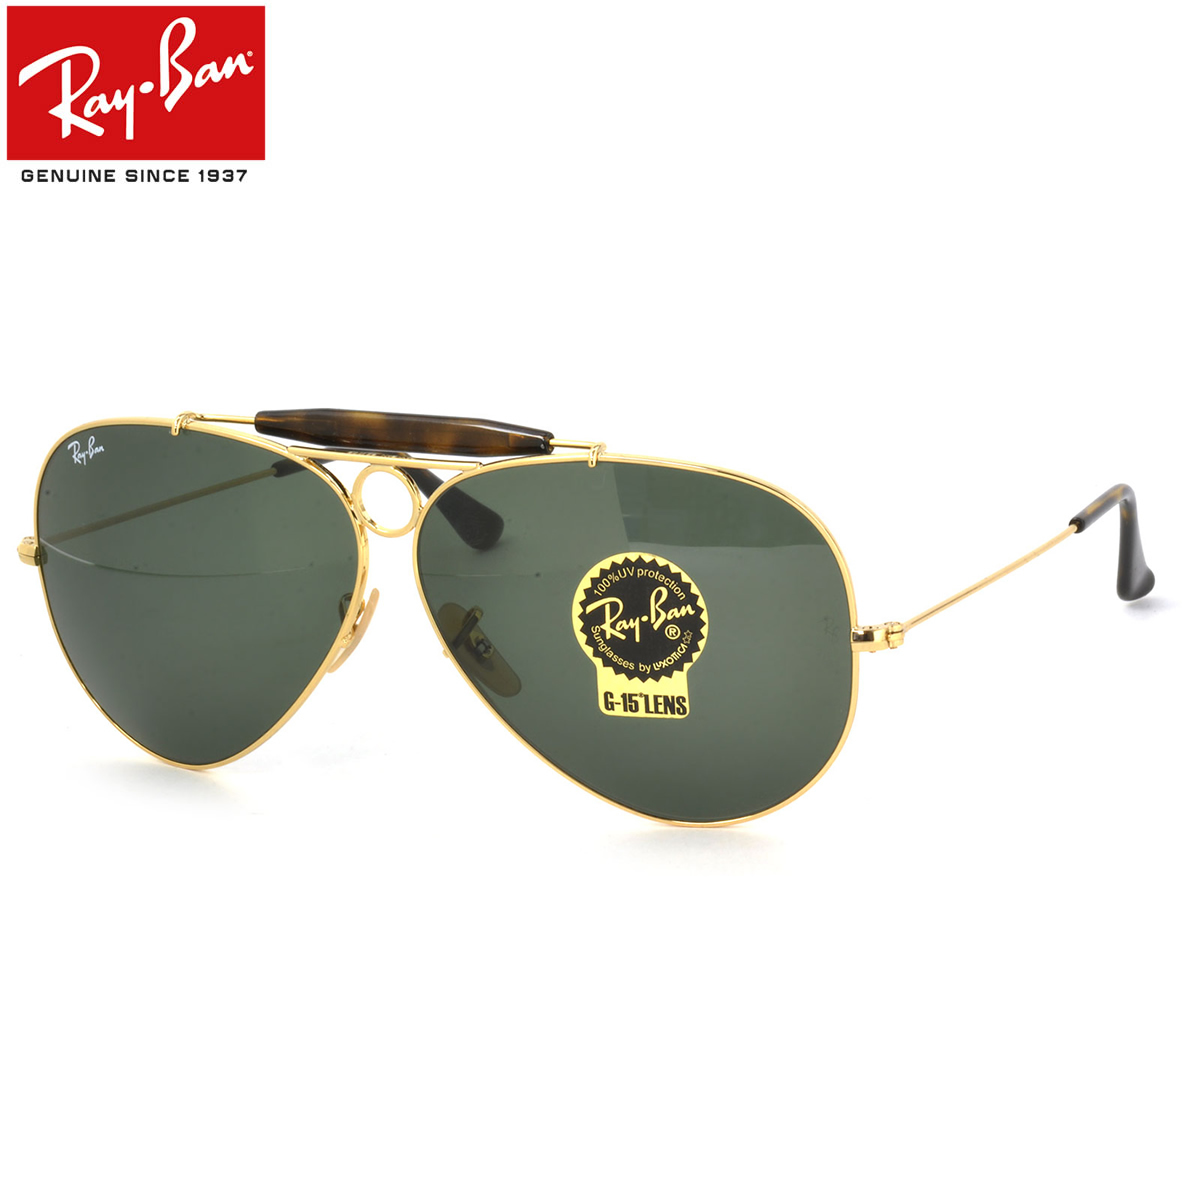 f5a28d36057 Ray-Ban Sunglasses RB3138 181 62size SHOOTER GENUINE NEW rayban ray ban